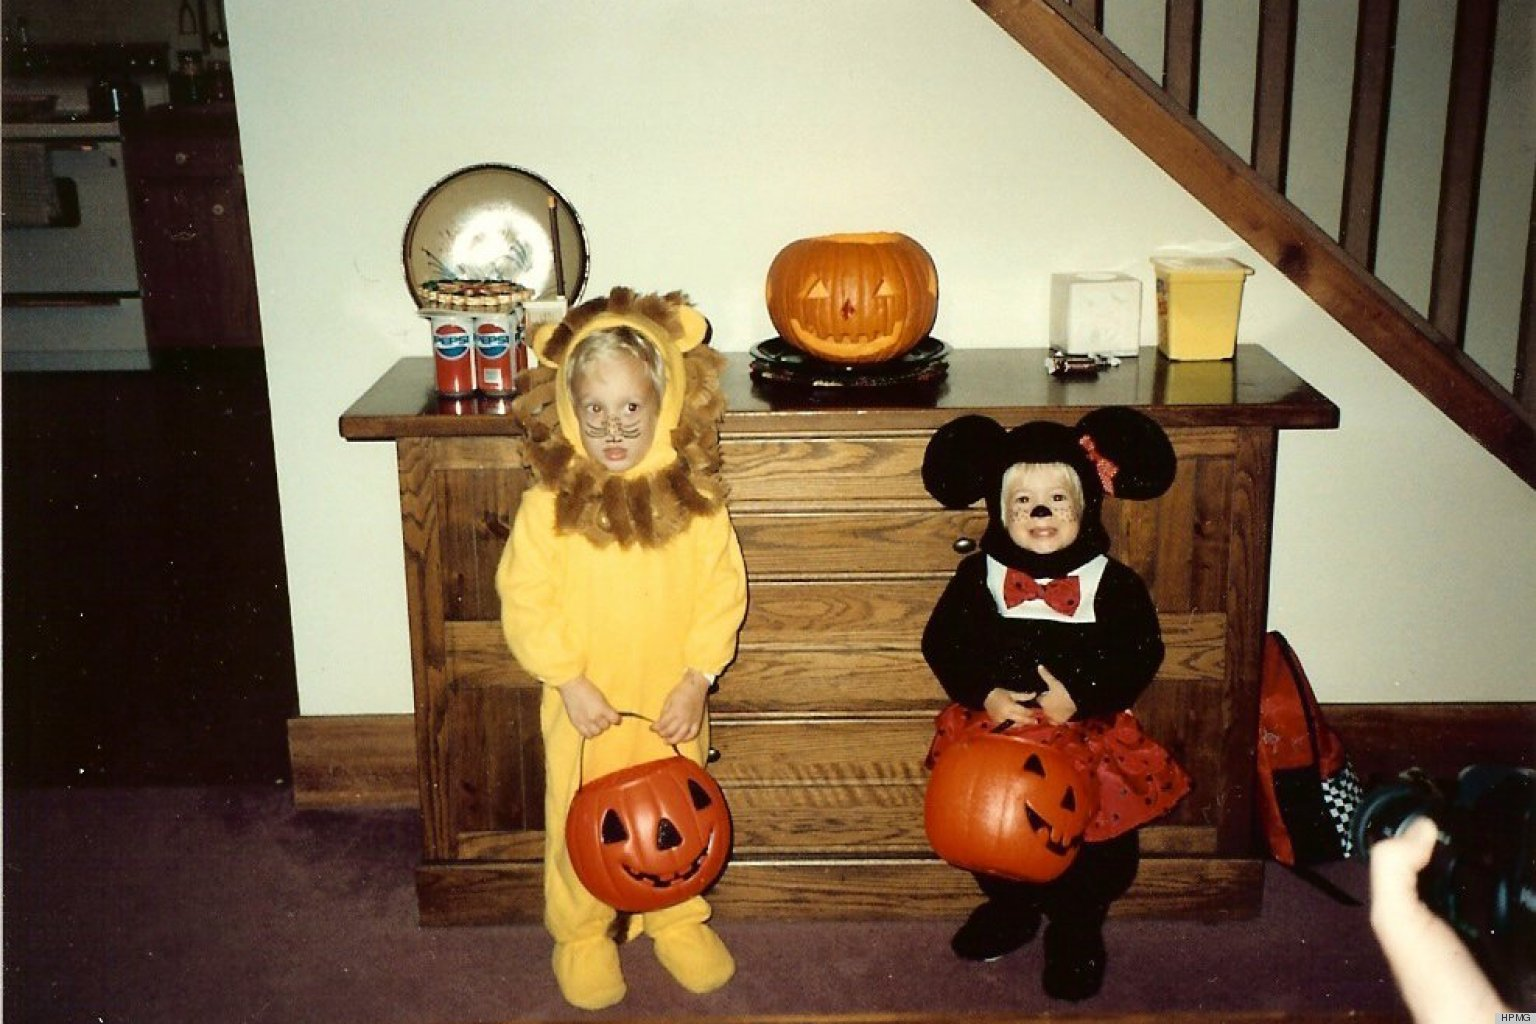 Halloween 2012 Costume Ideas From Our Staff From A Murderous u0027Annieu0027 To The Most-Surprising Richard Simmons Ever (PHOTOS) | HuffPost & Halloween 2012 Costume Ideas From Our Staff From A Murderous u0027Annie ...